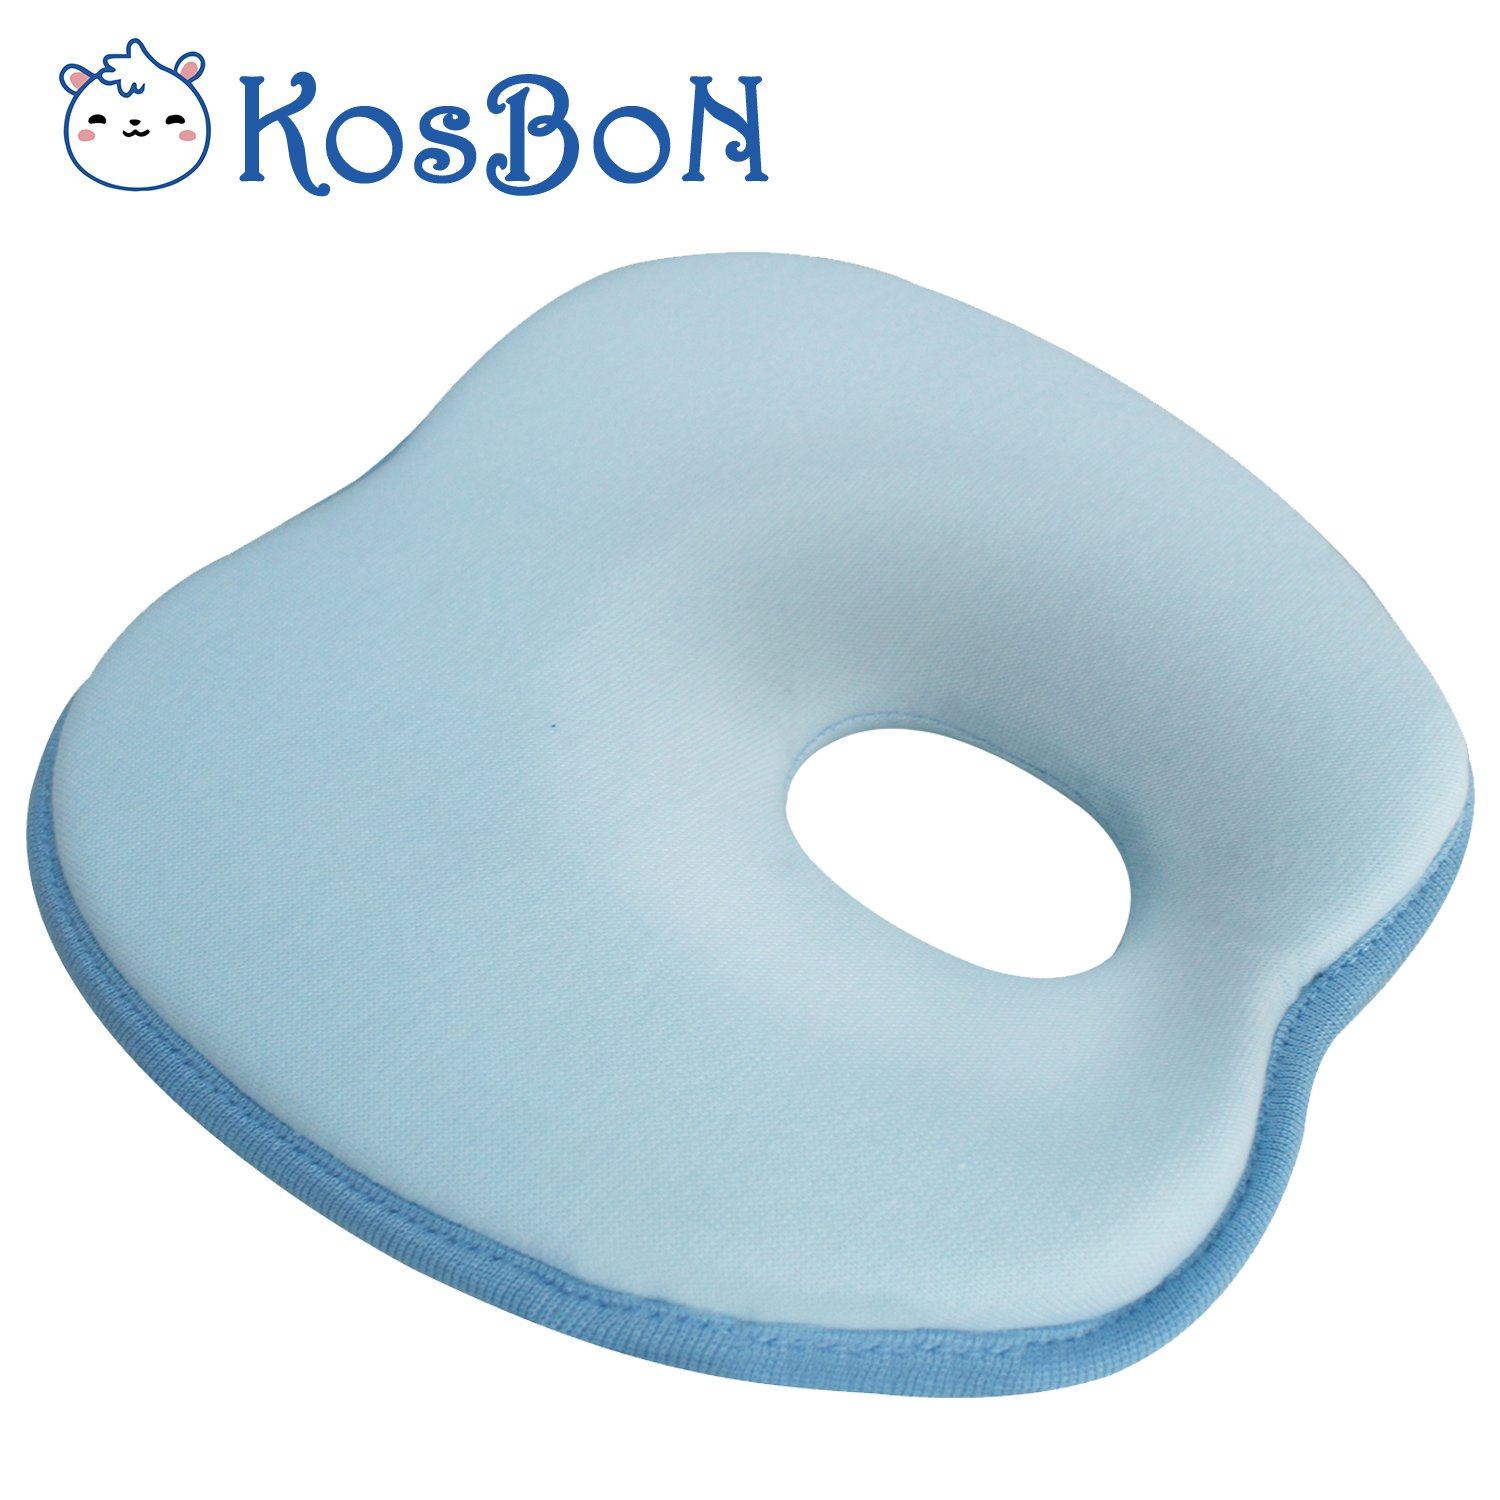 KSB Breathable Soft Memory Foam Baby Pillow Neck Support, Prevent Flat Head Syndrome For 3 Months To 1 Year Old Infant.